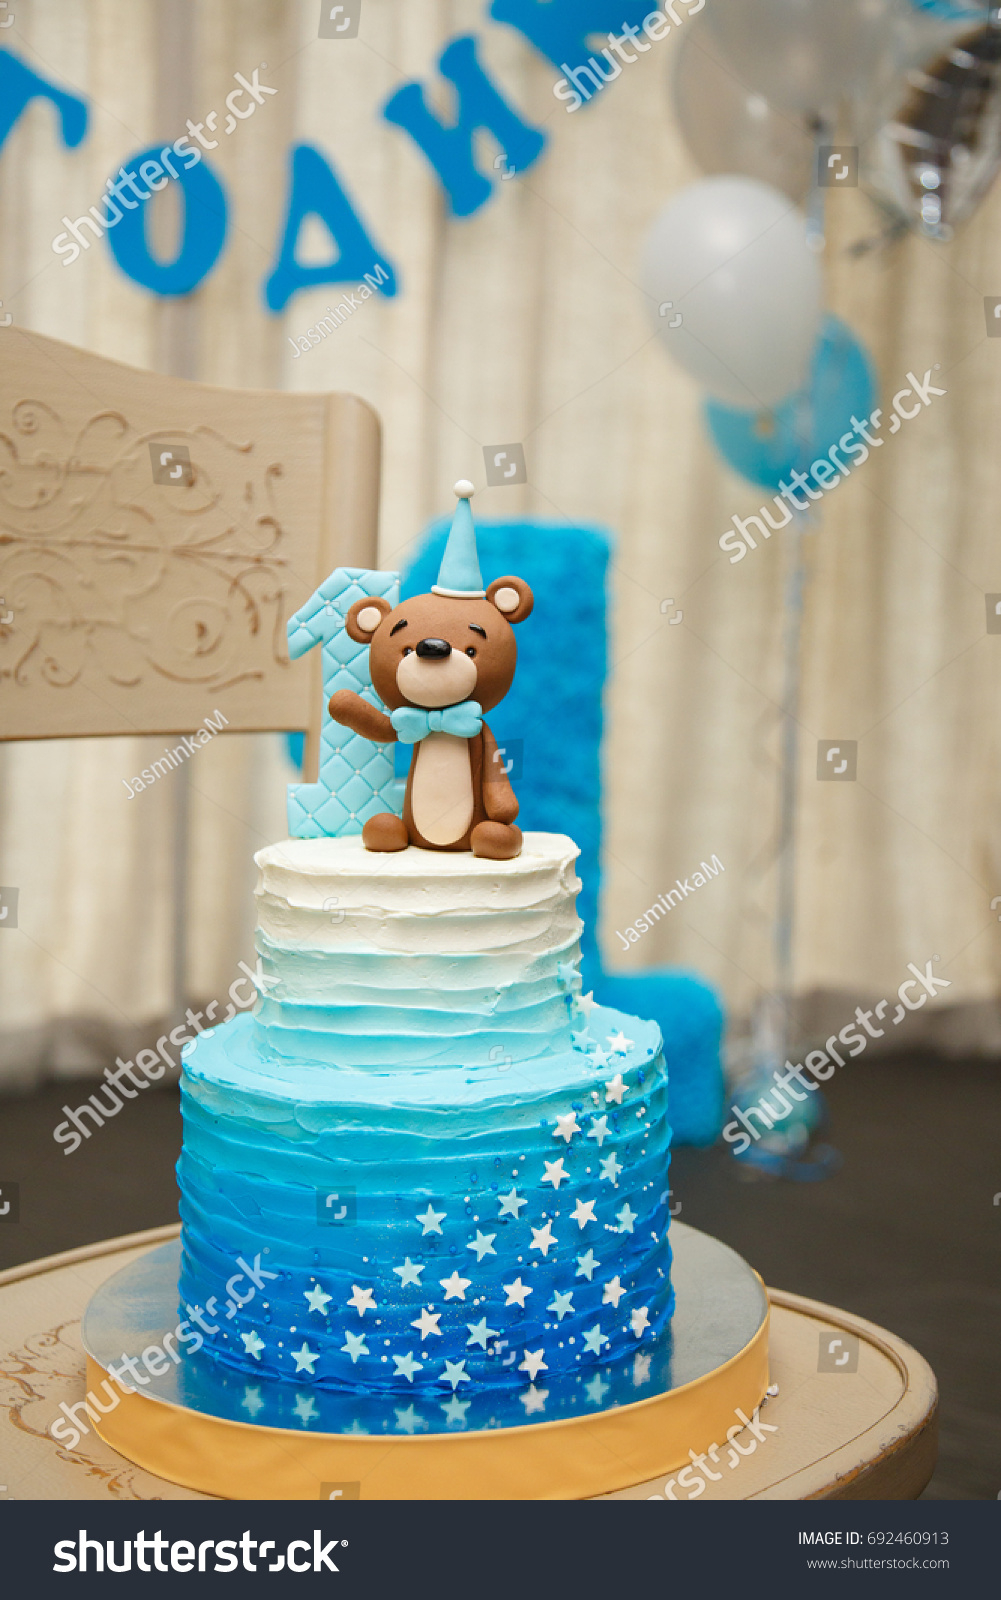 Birthday Cake For Boys.First Birthday Cake Boy Images Cake And Photos Masakanenak Com